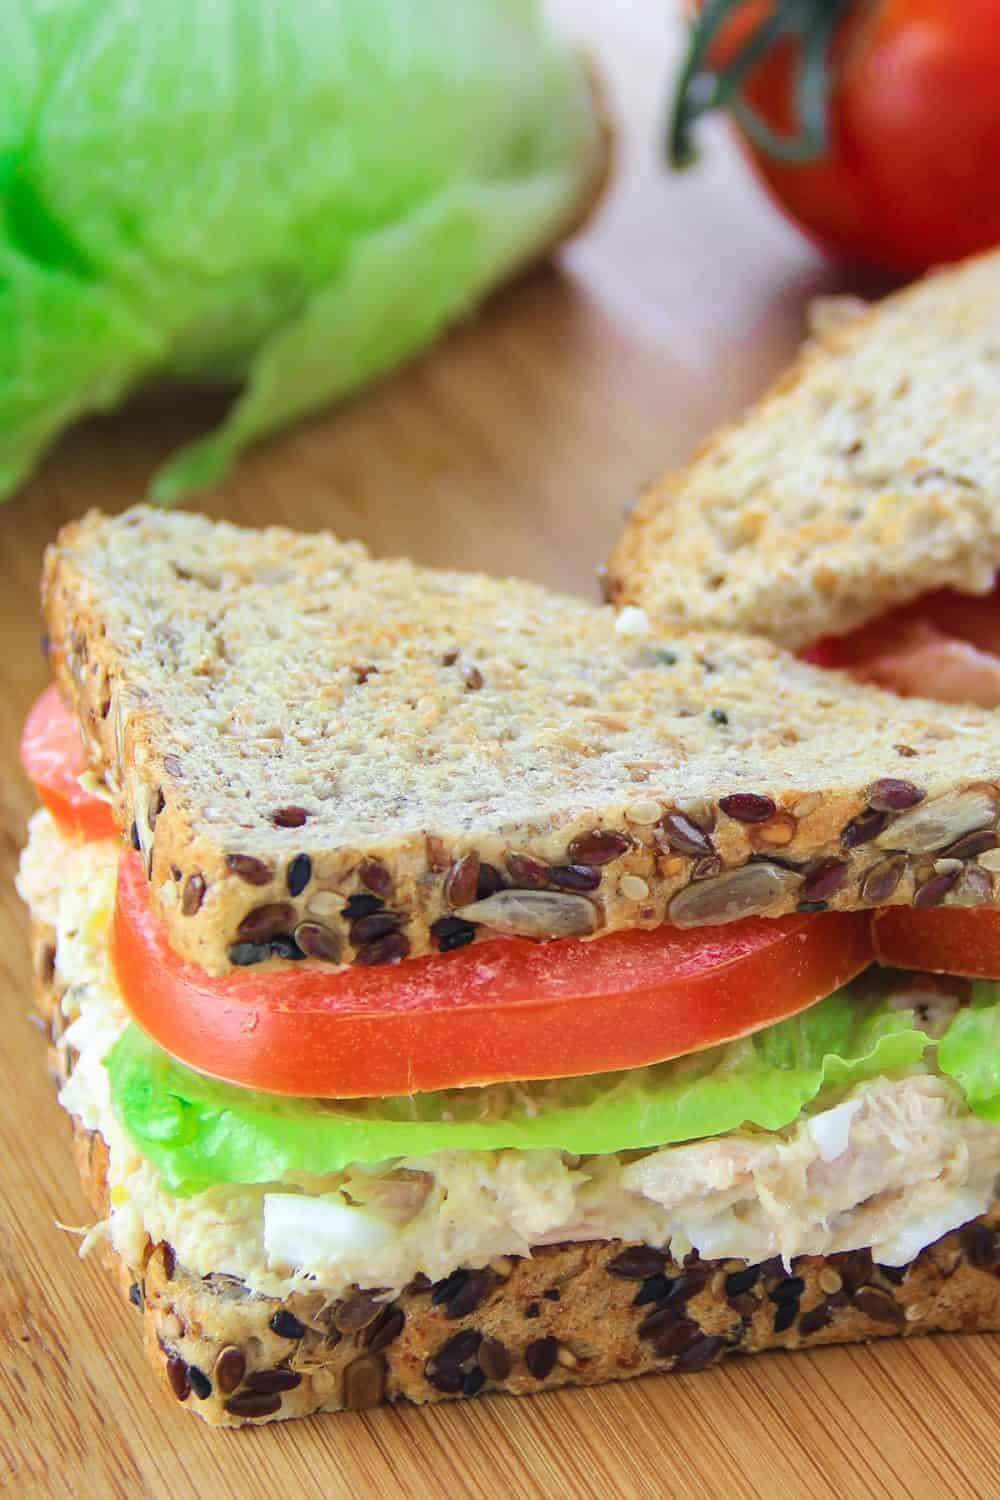 tuna salad sandwich on a wooden board with lettuce, tomatoes, and whole wheat bread